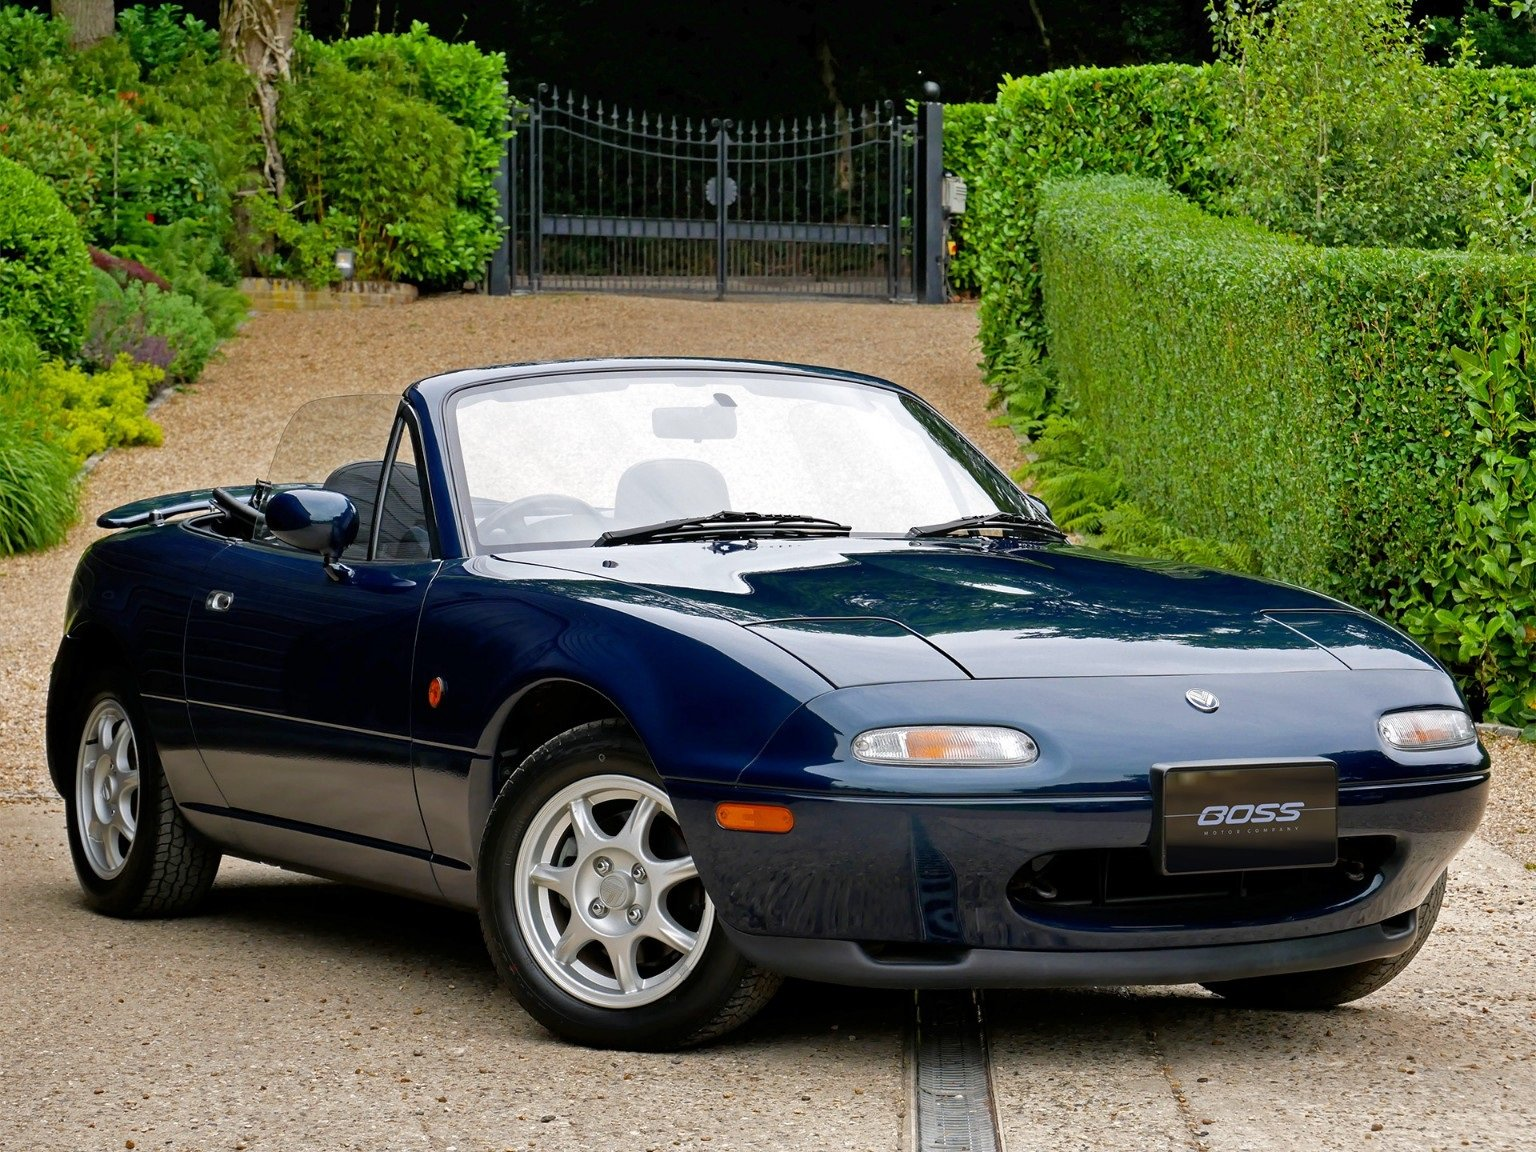 1997 Mazda MX-5 S-Special 1, 1.8 - Eunos Roadster - 3,000 MILES For Sale (picture 1 of 6)